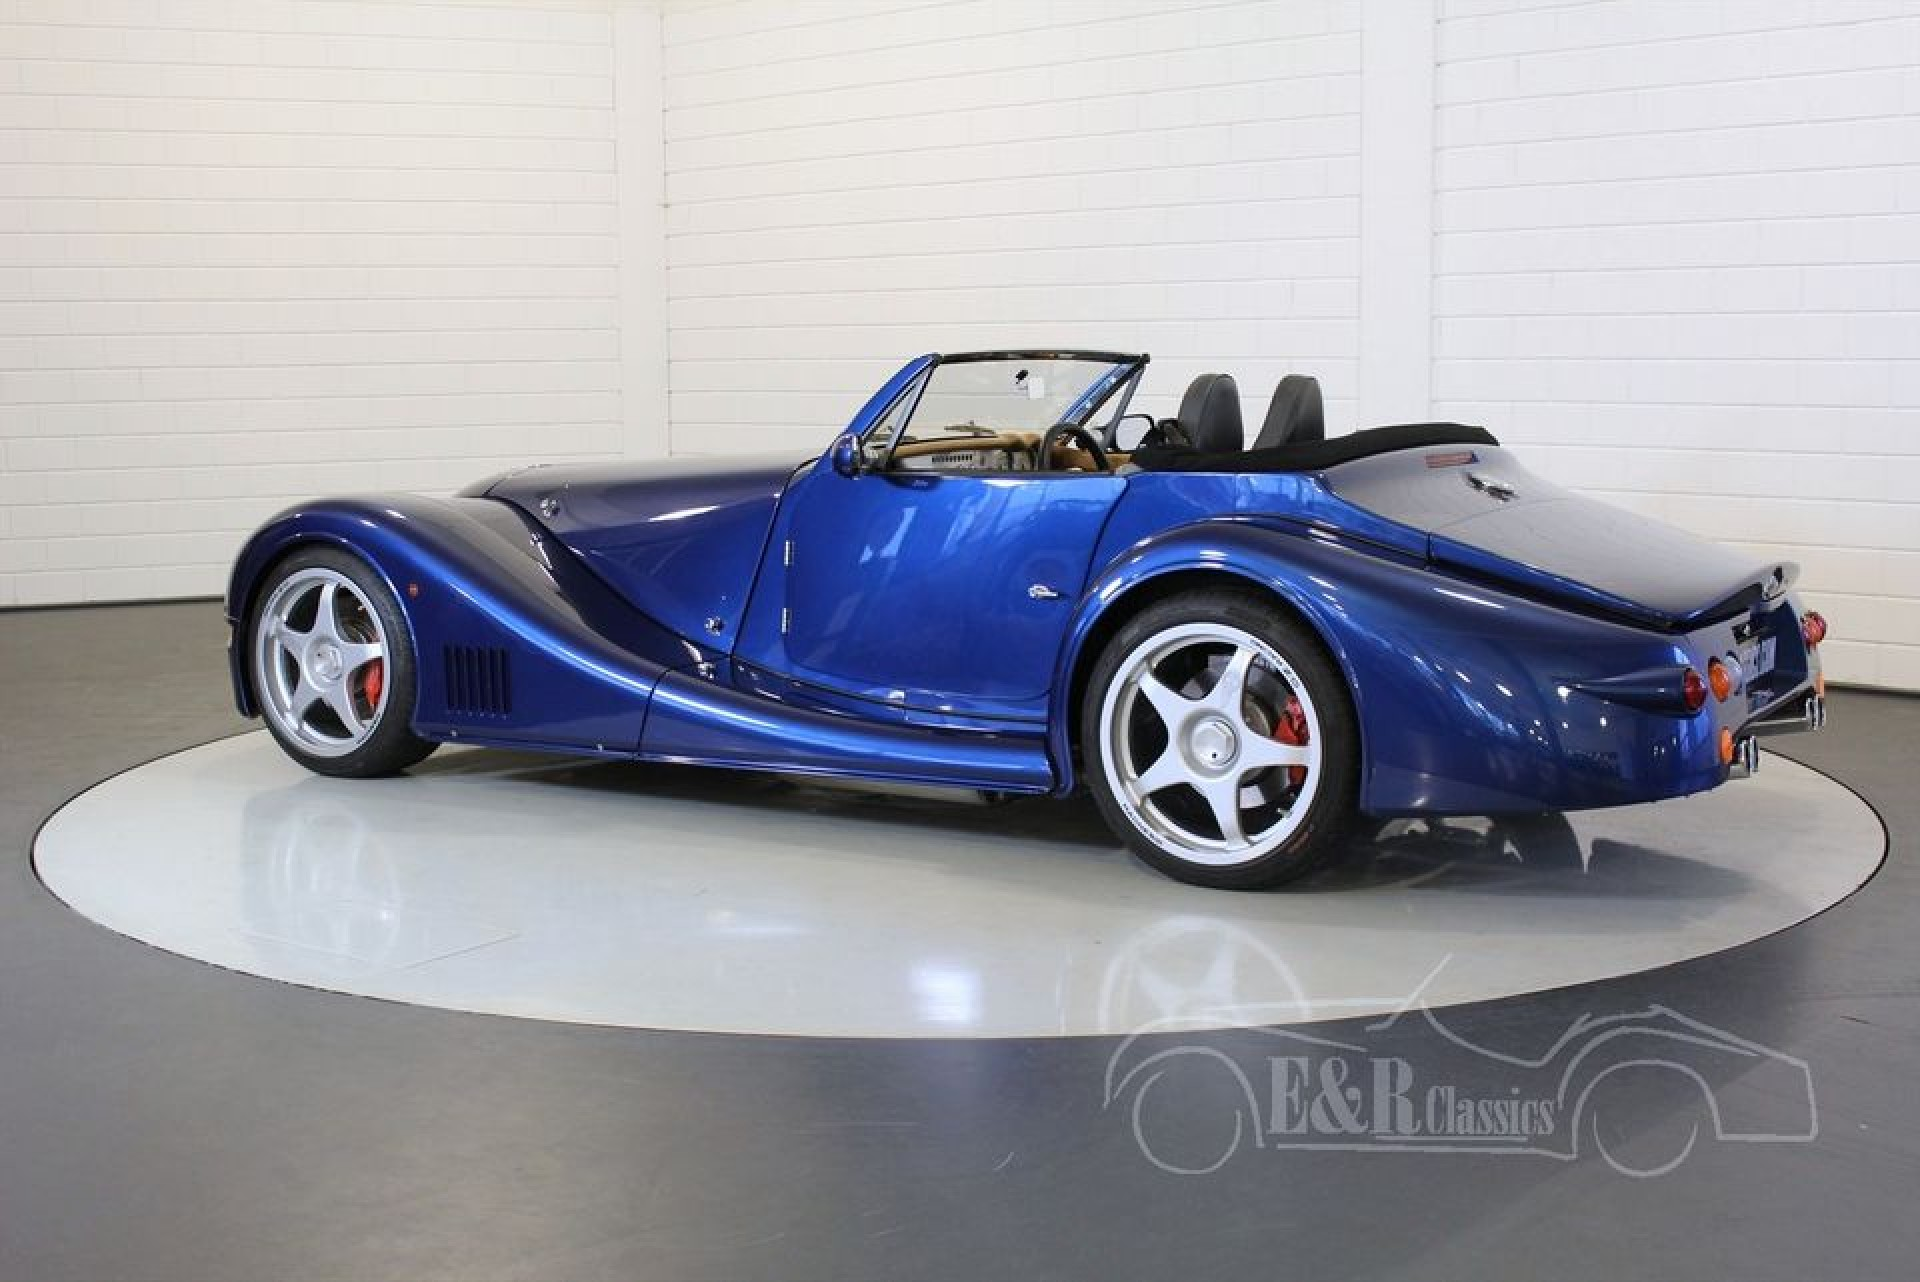 morgan aero 8 2002 cabriolet for sale at erclassics. Black Bedroom Furniture Sets. Home Design Ideas